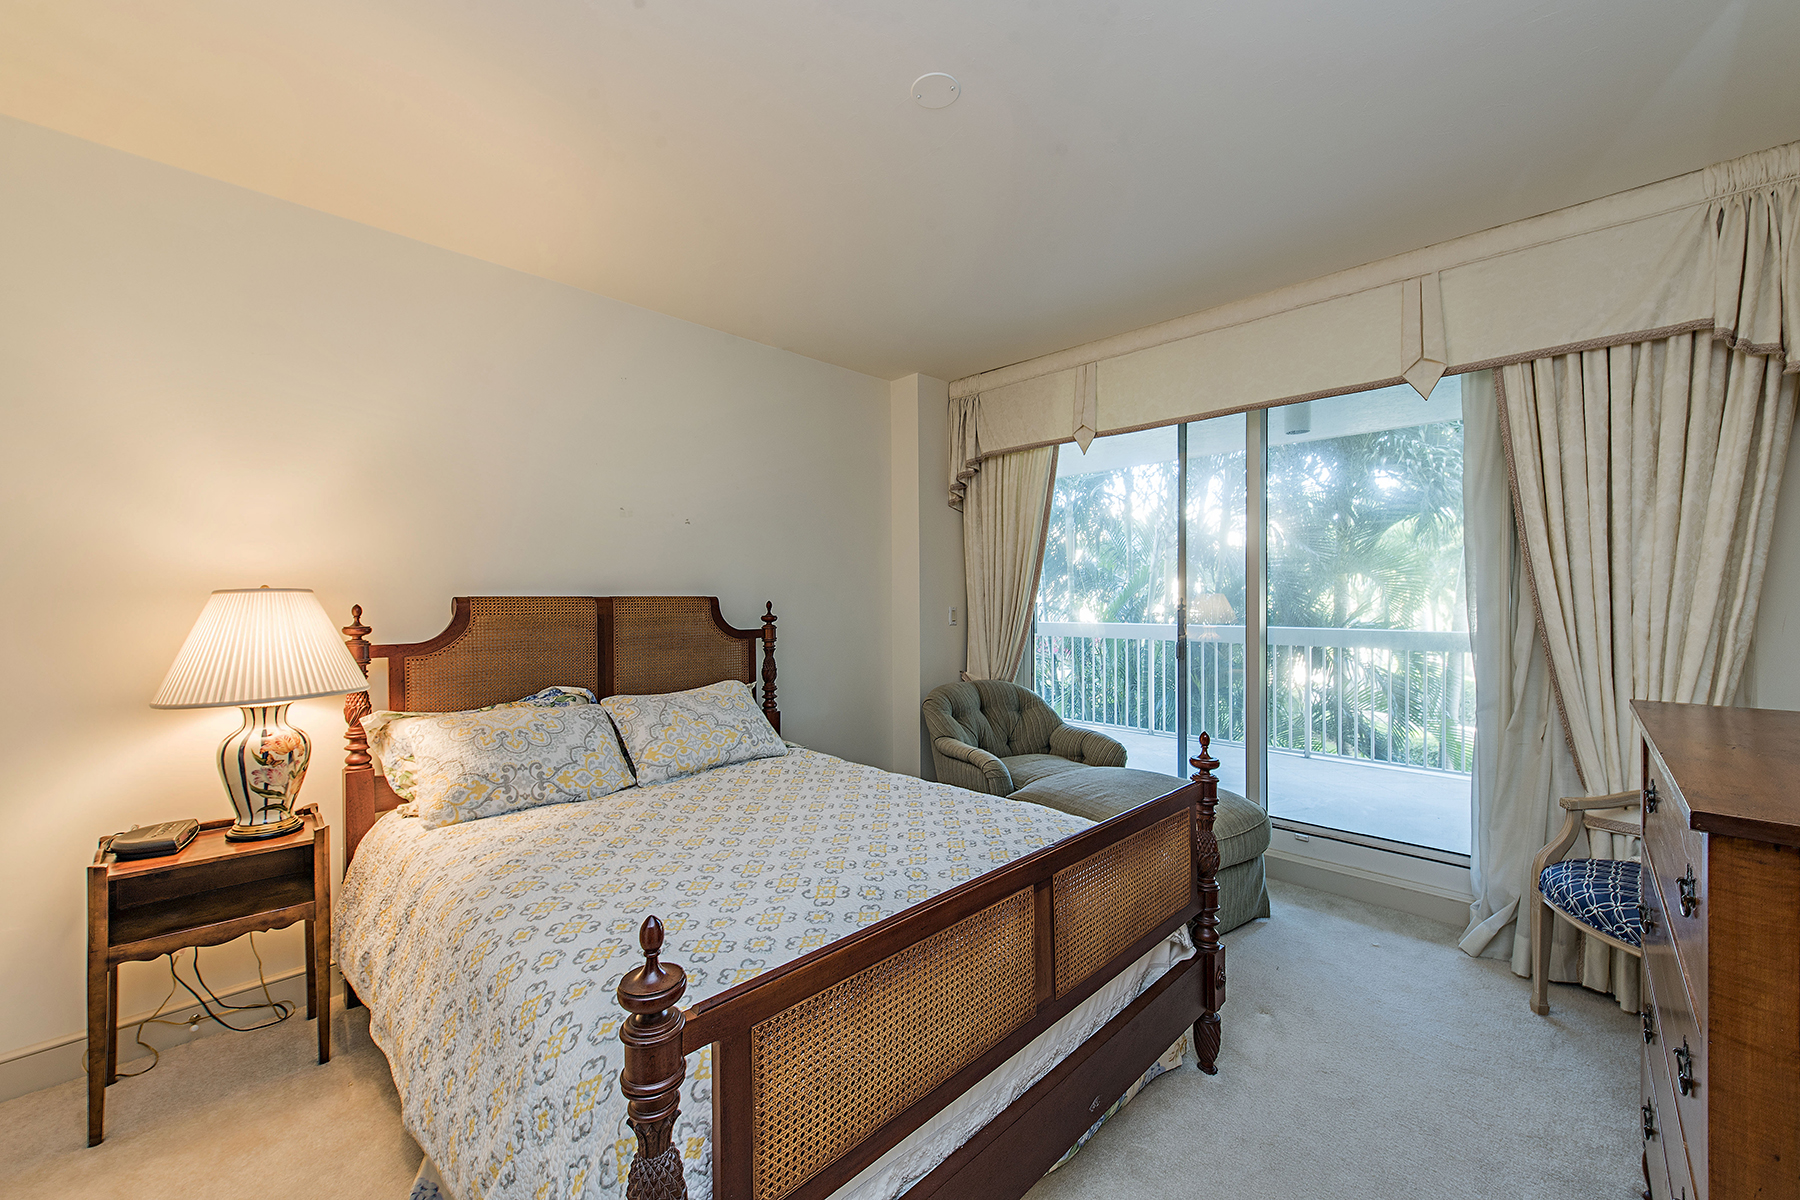 Additional photo for property listing at PARK SHORE - BRITTANY 4021  Gulf Shore Blvd  N 206,  Naples, Florida 34103 United States